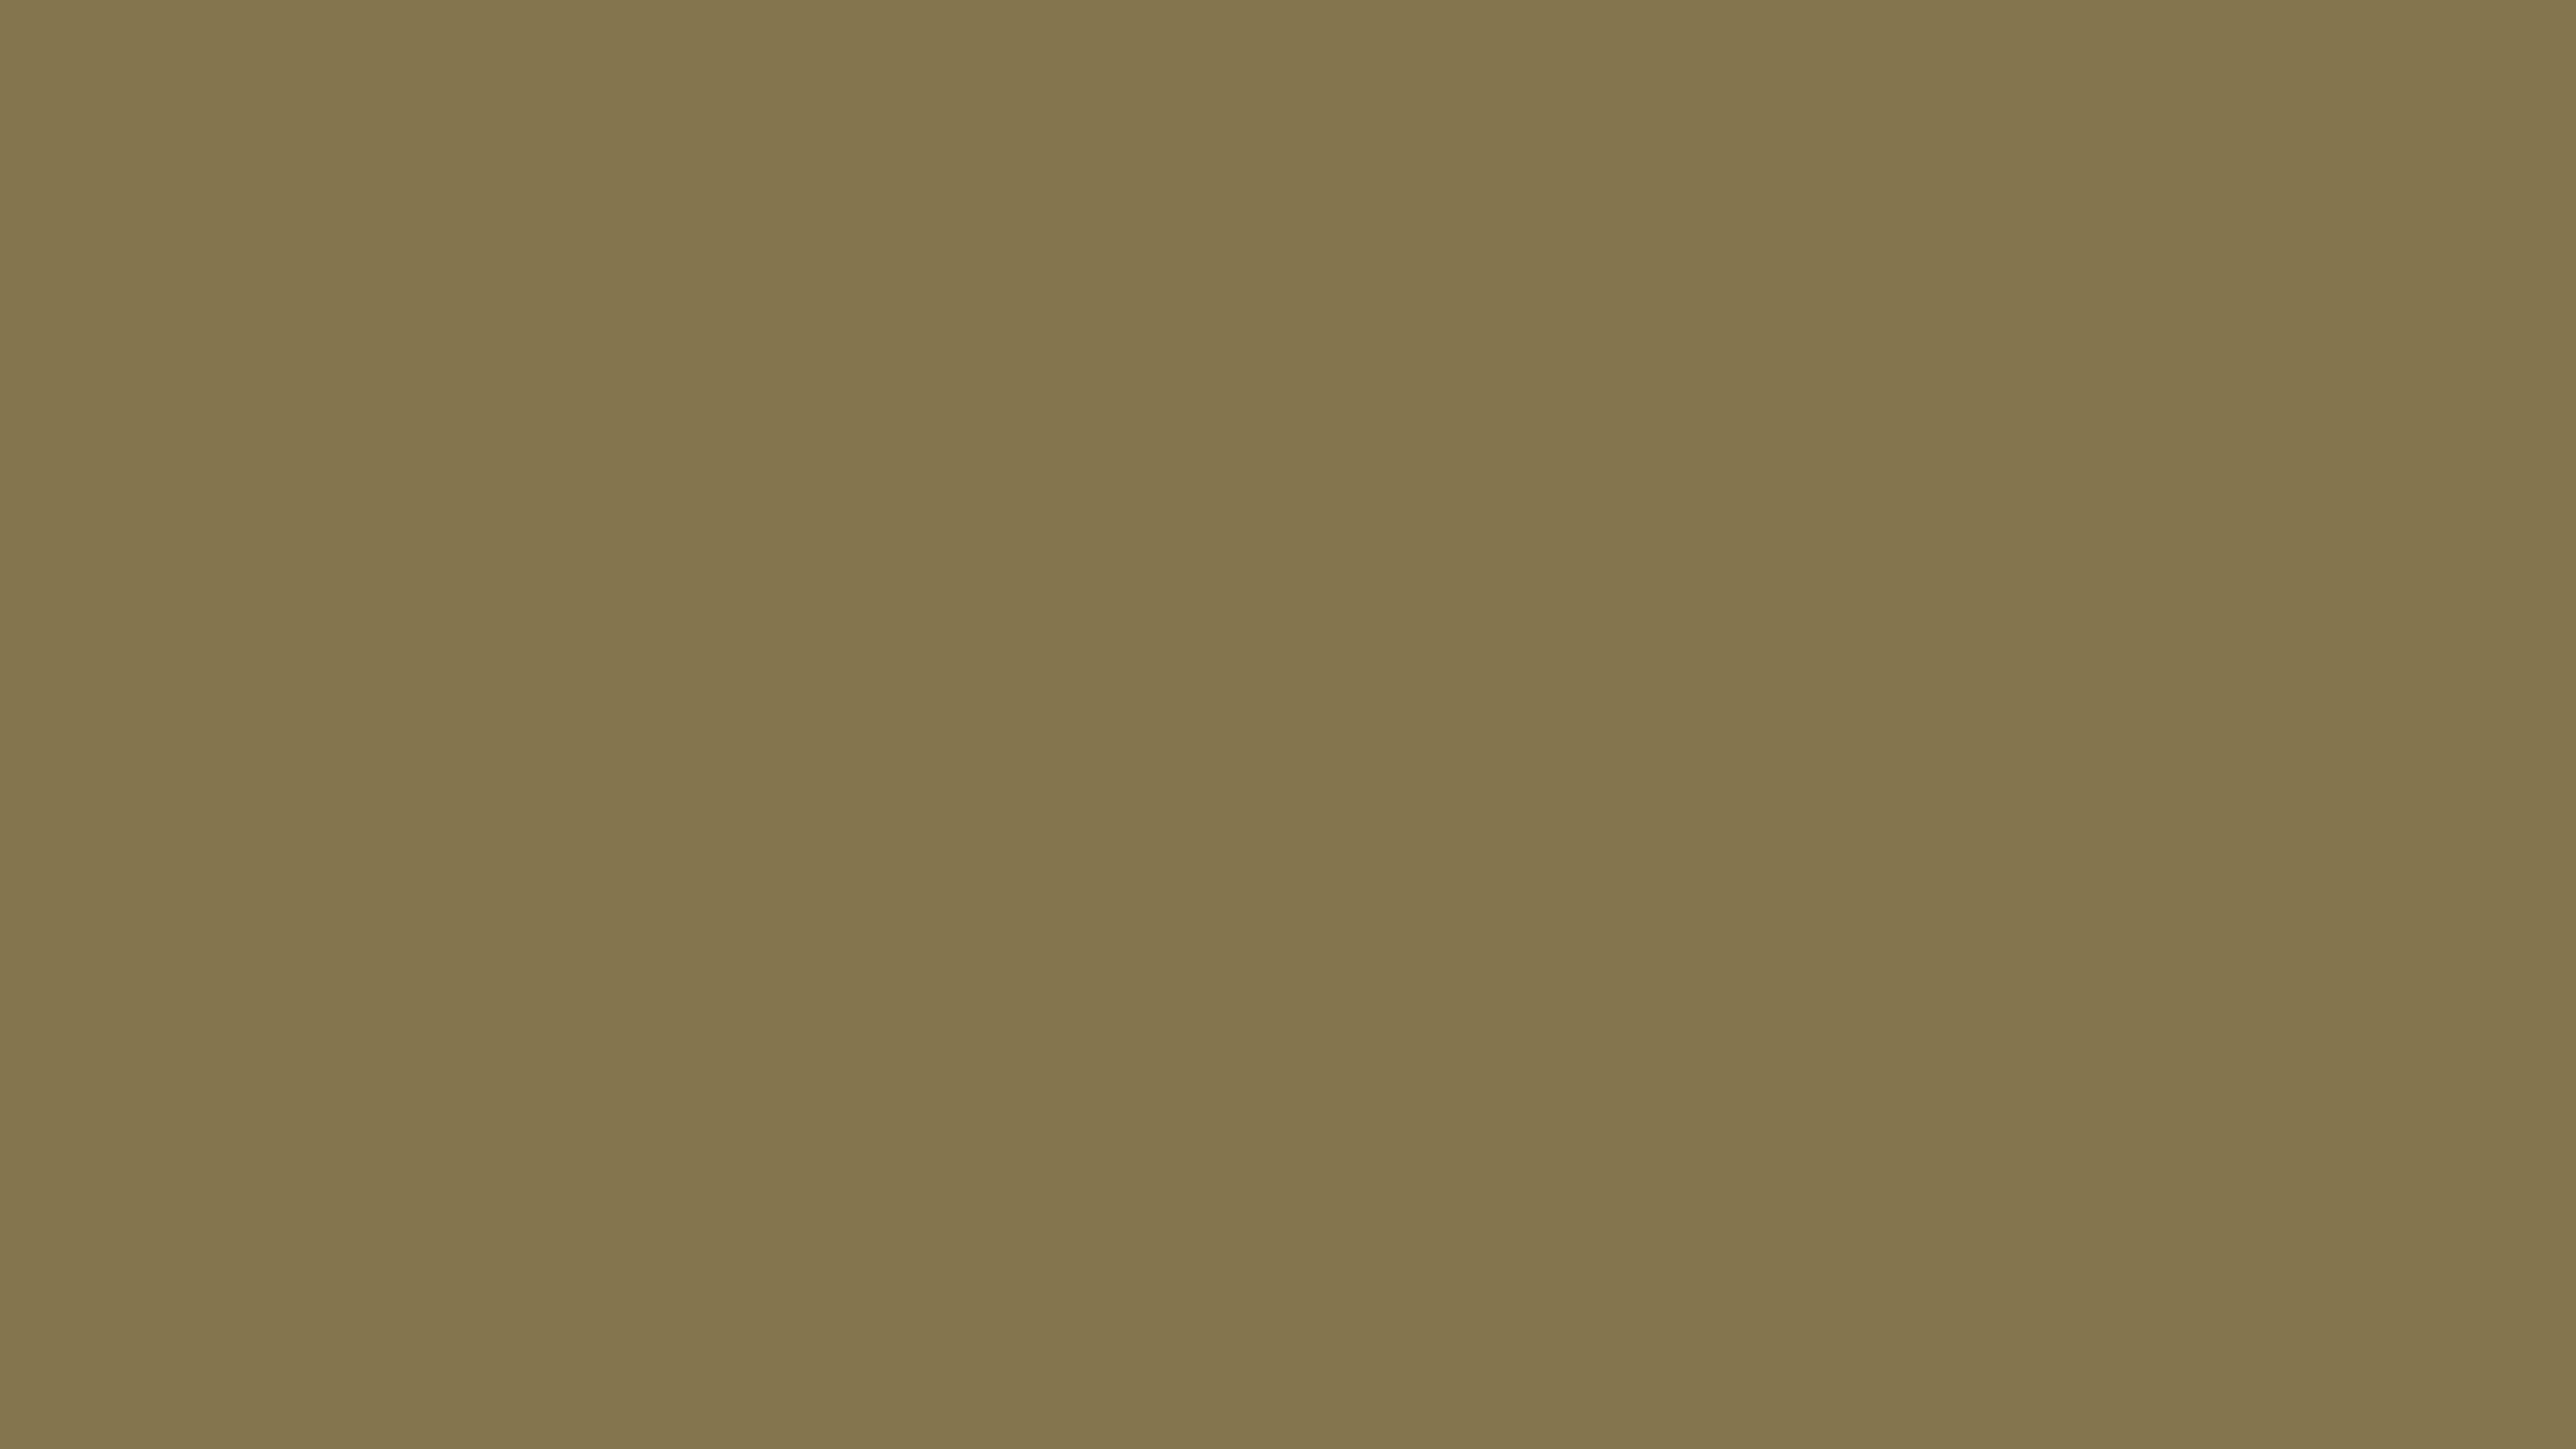 7680x4320 Gold Fusion Solid Color Background